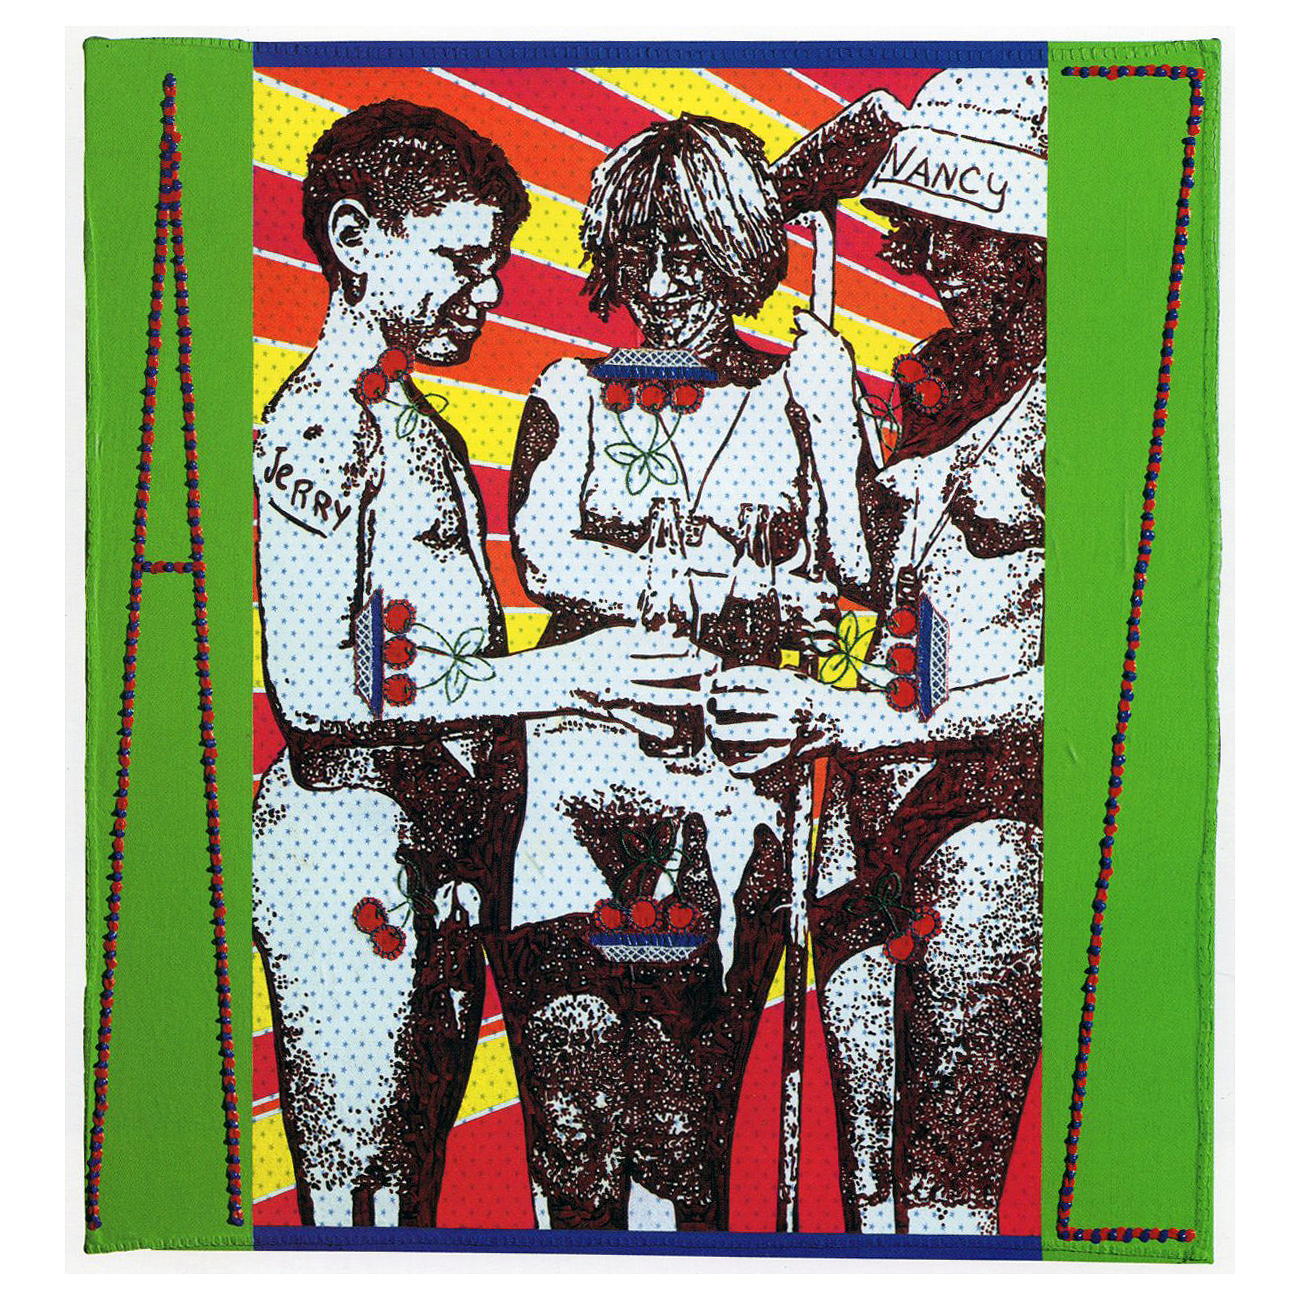 Carole Caroompas, Hester and Zorro: In Quest of a New World: Brave New World, 1997, acrylic on found embroidery on canvas, 36 x 33.5 inches